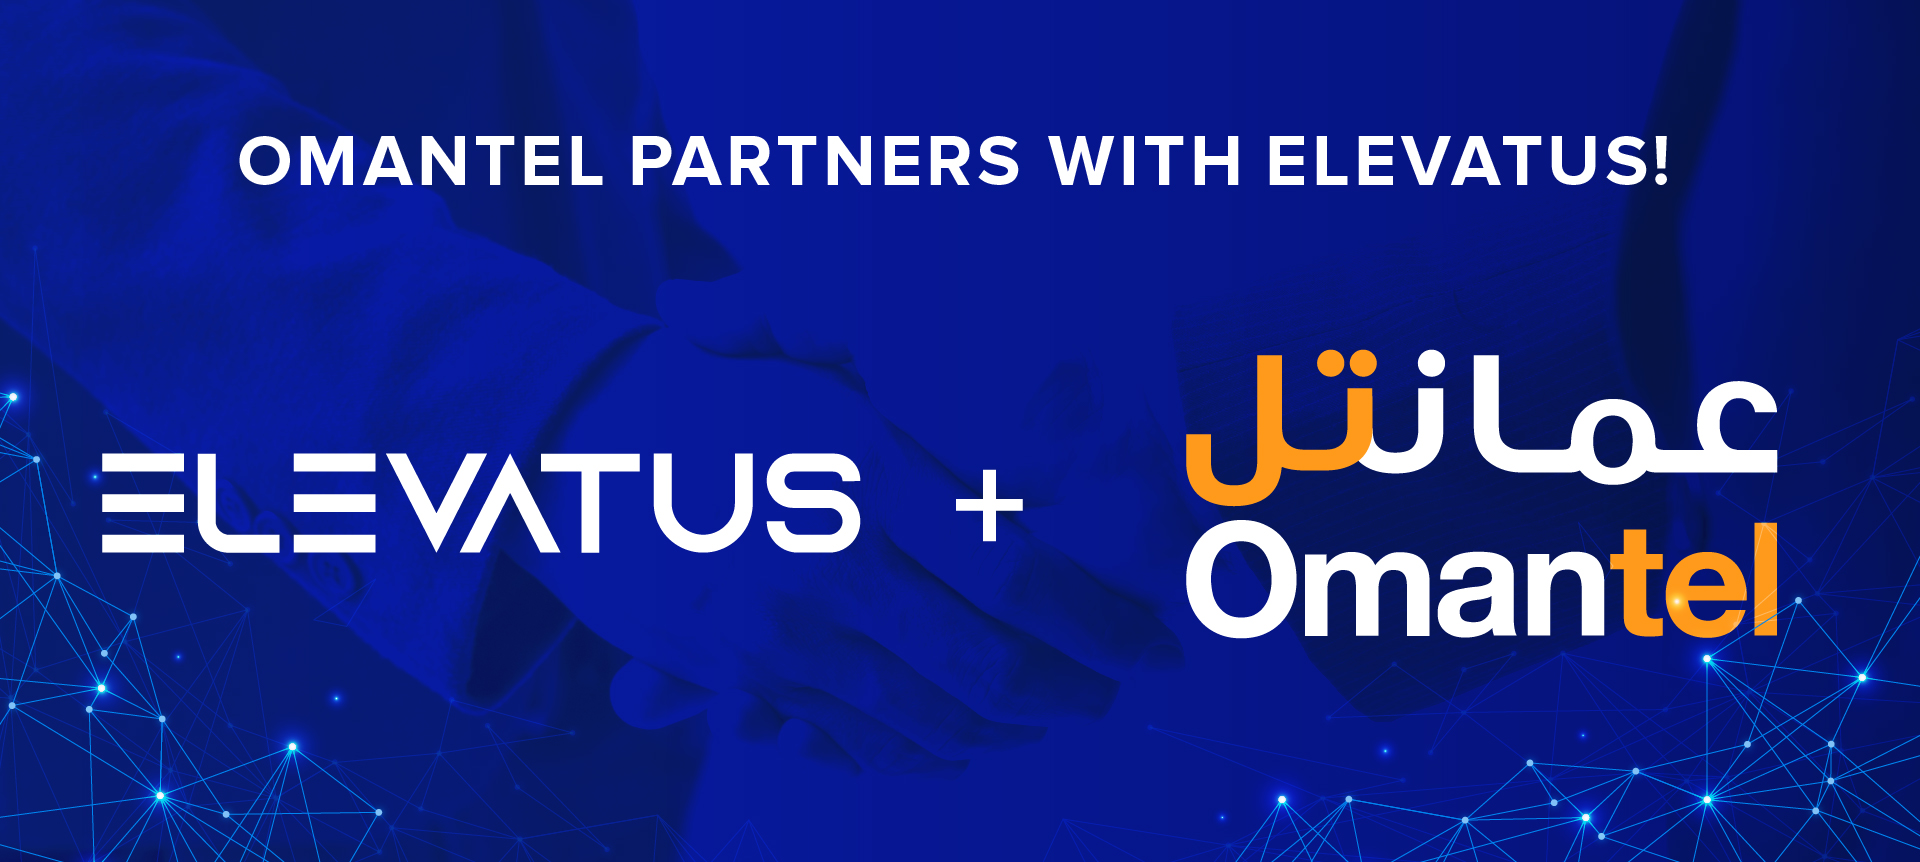 Omantel uses Elevatus' video interviewing software